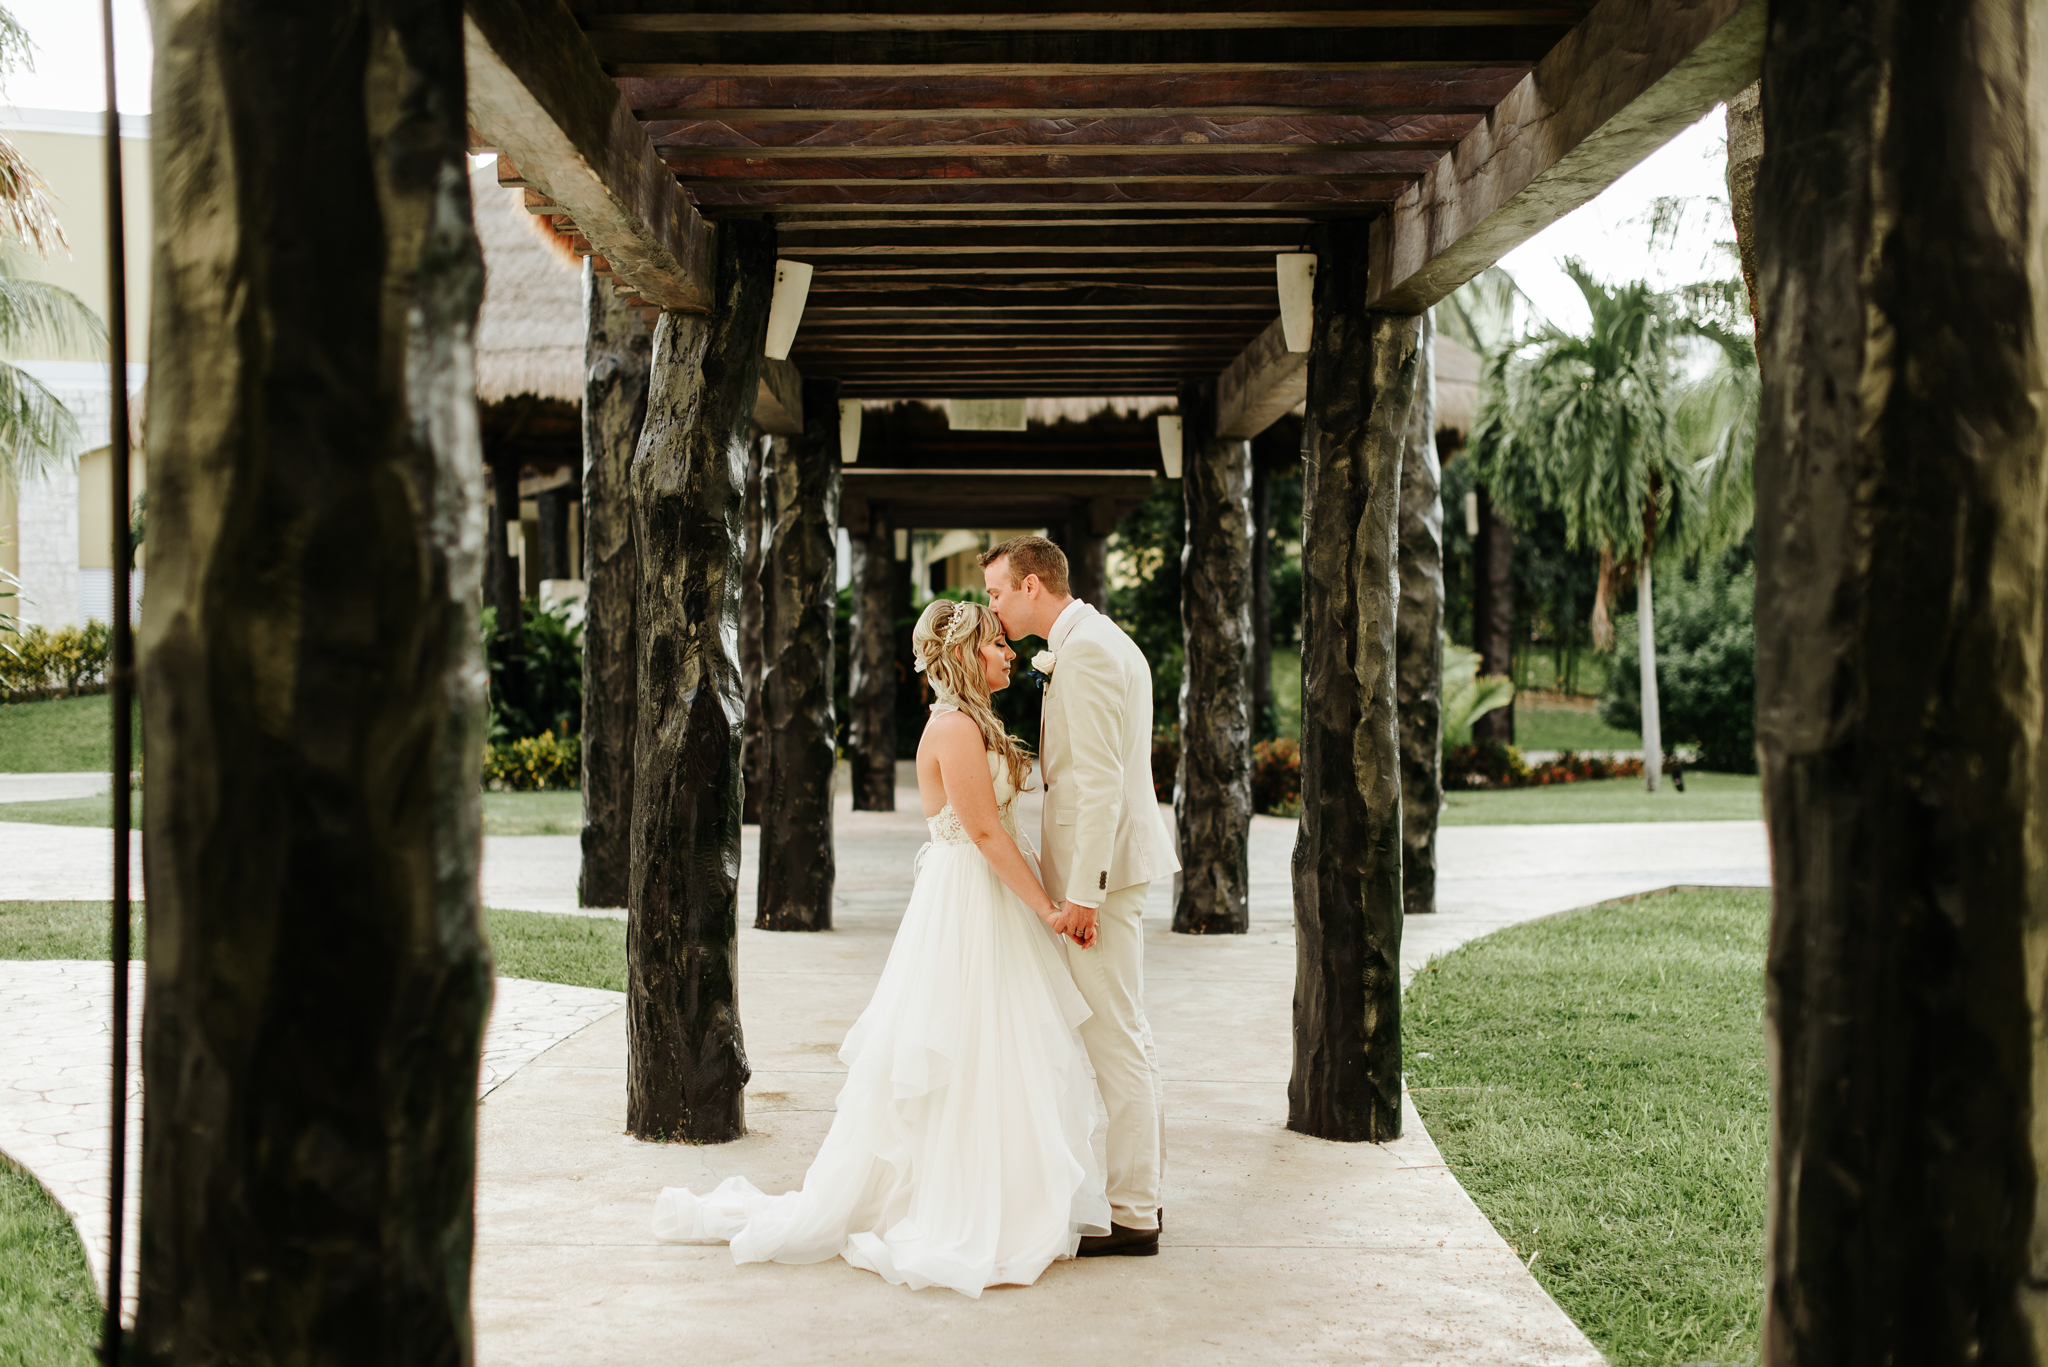 love-and-be-loved-photography-destination-wedding-photographer-cancun-mexico-jessica-jon-image-picture-photo-136.jpg